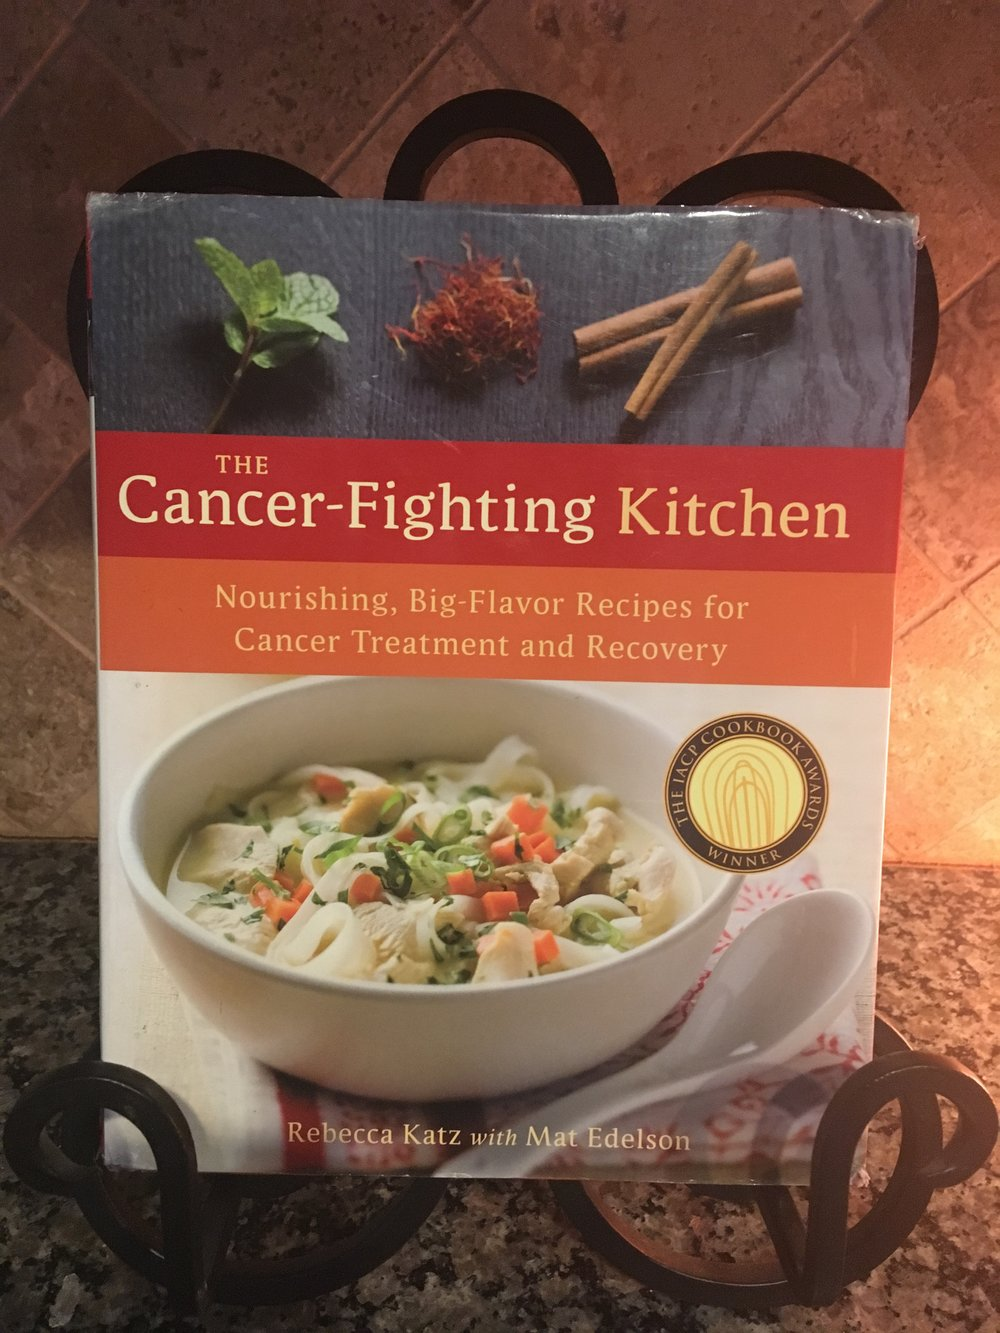 This is the book where I first learned that Food can be medicine and could help me with side effects and to heal.